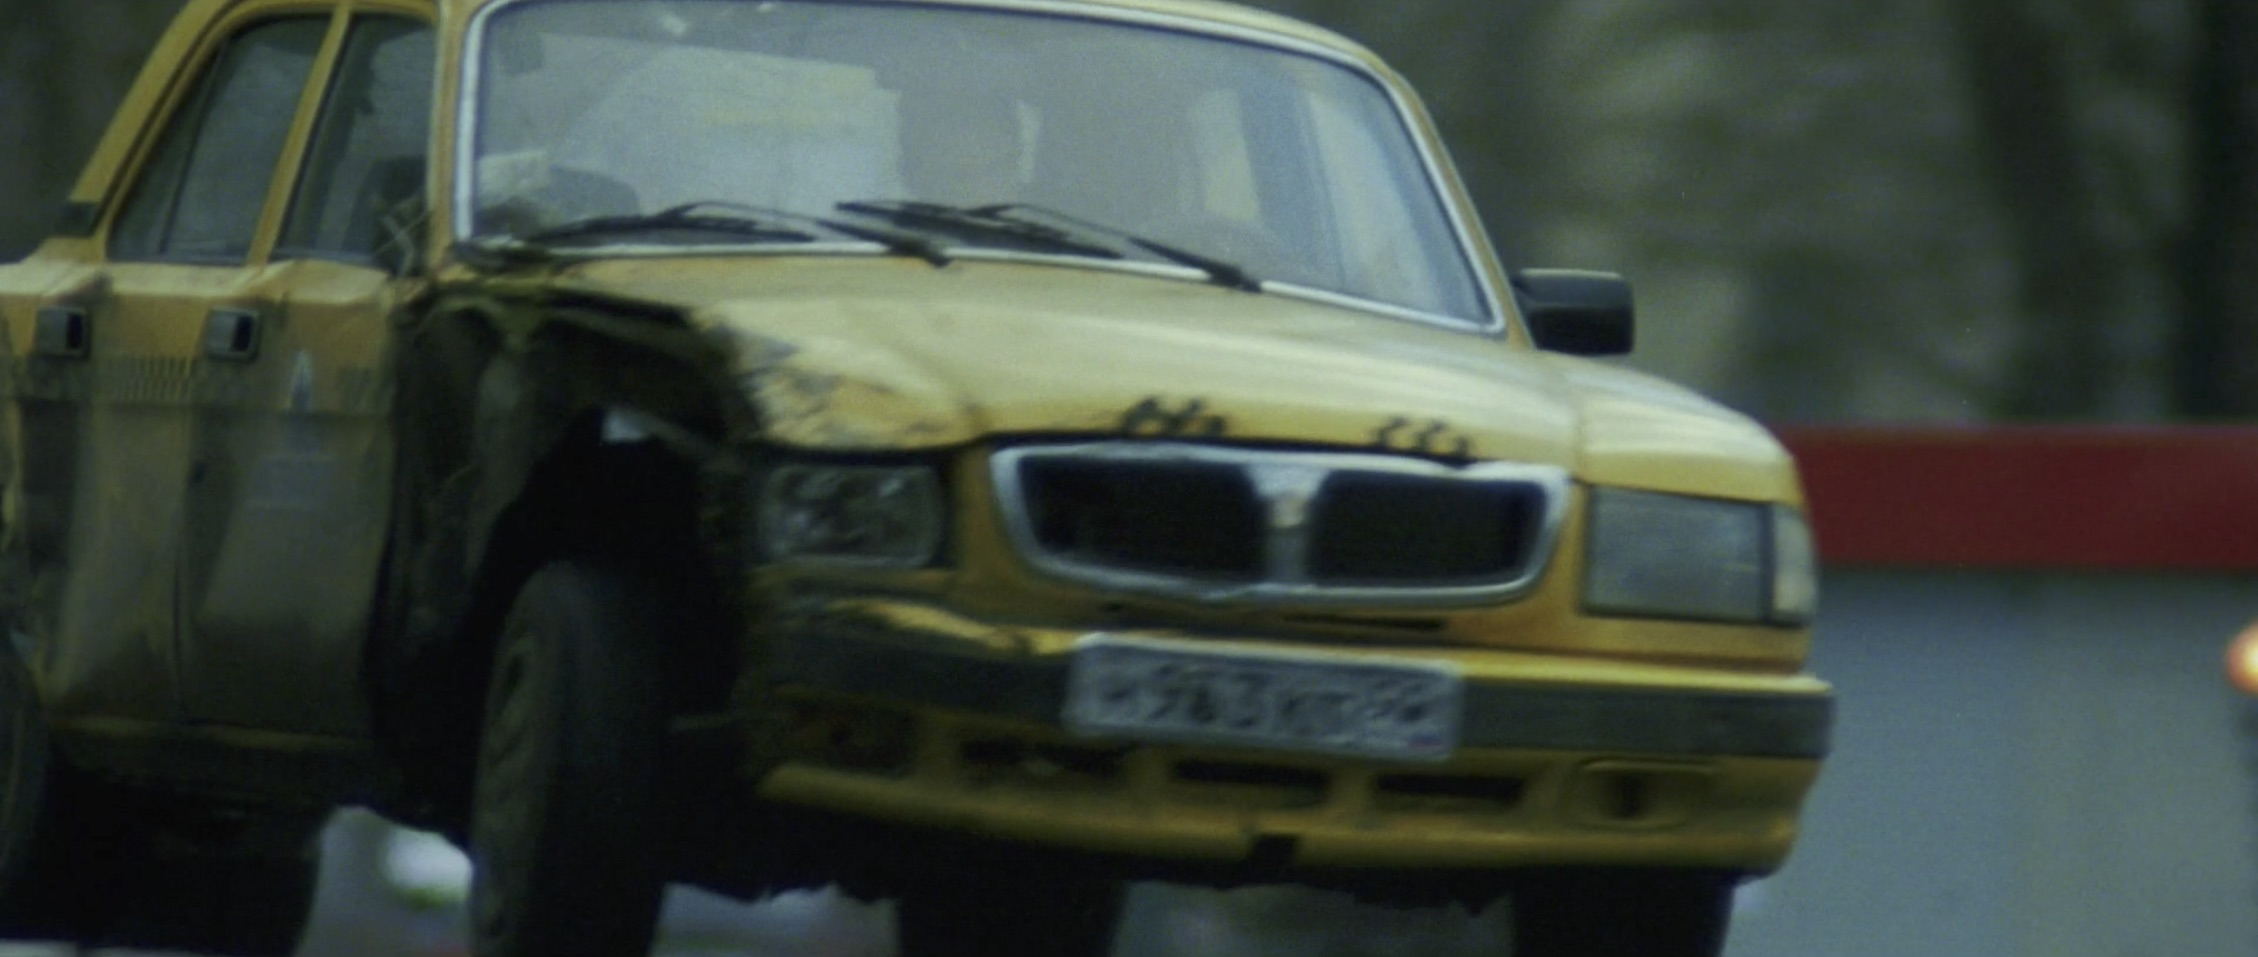 Bourne Supremacy Car Chase Taxi Smashed Front